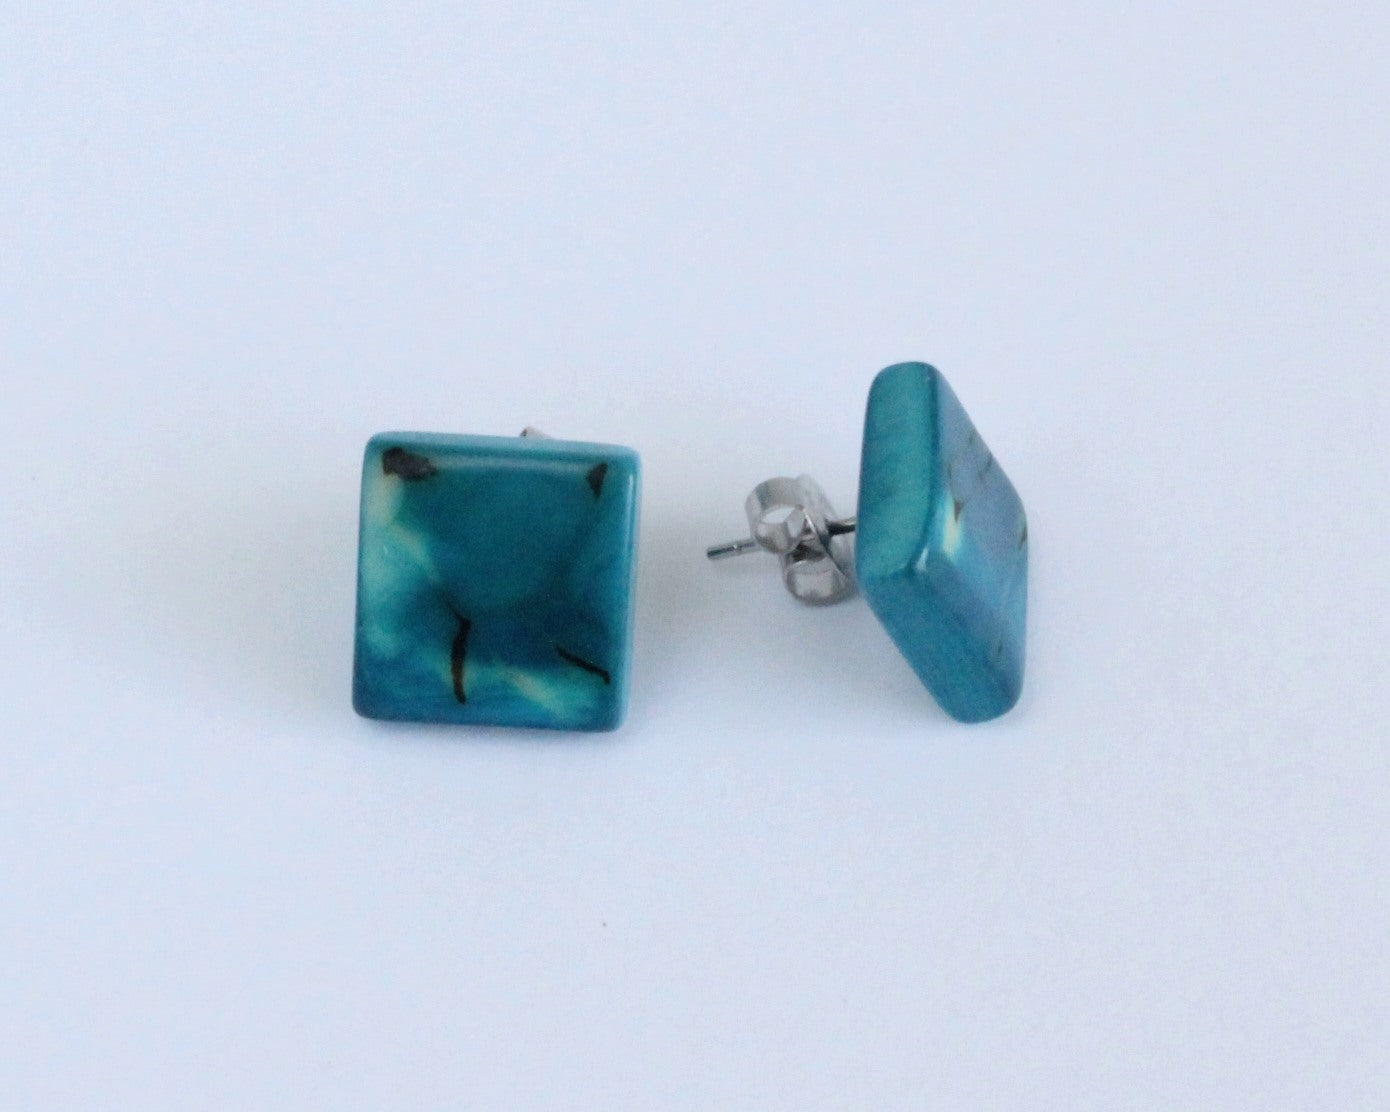 Handmade earring, sustainable, tagua, stud, push back, turquoise, side